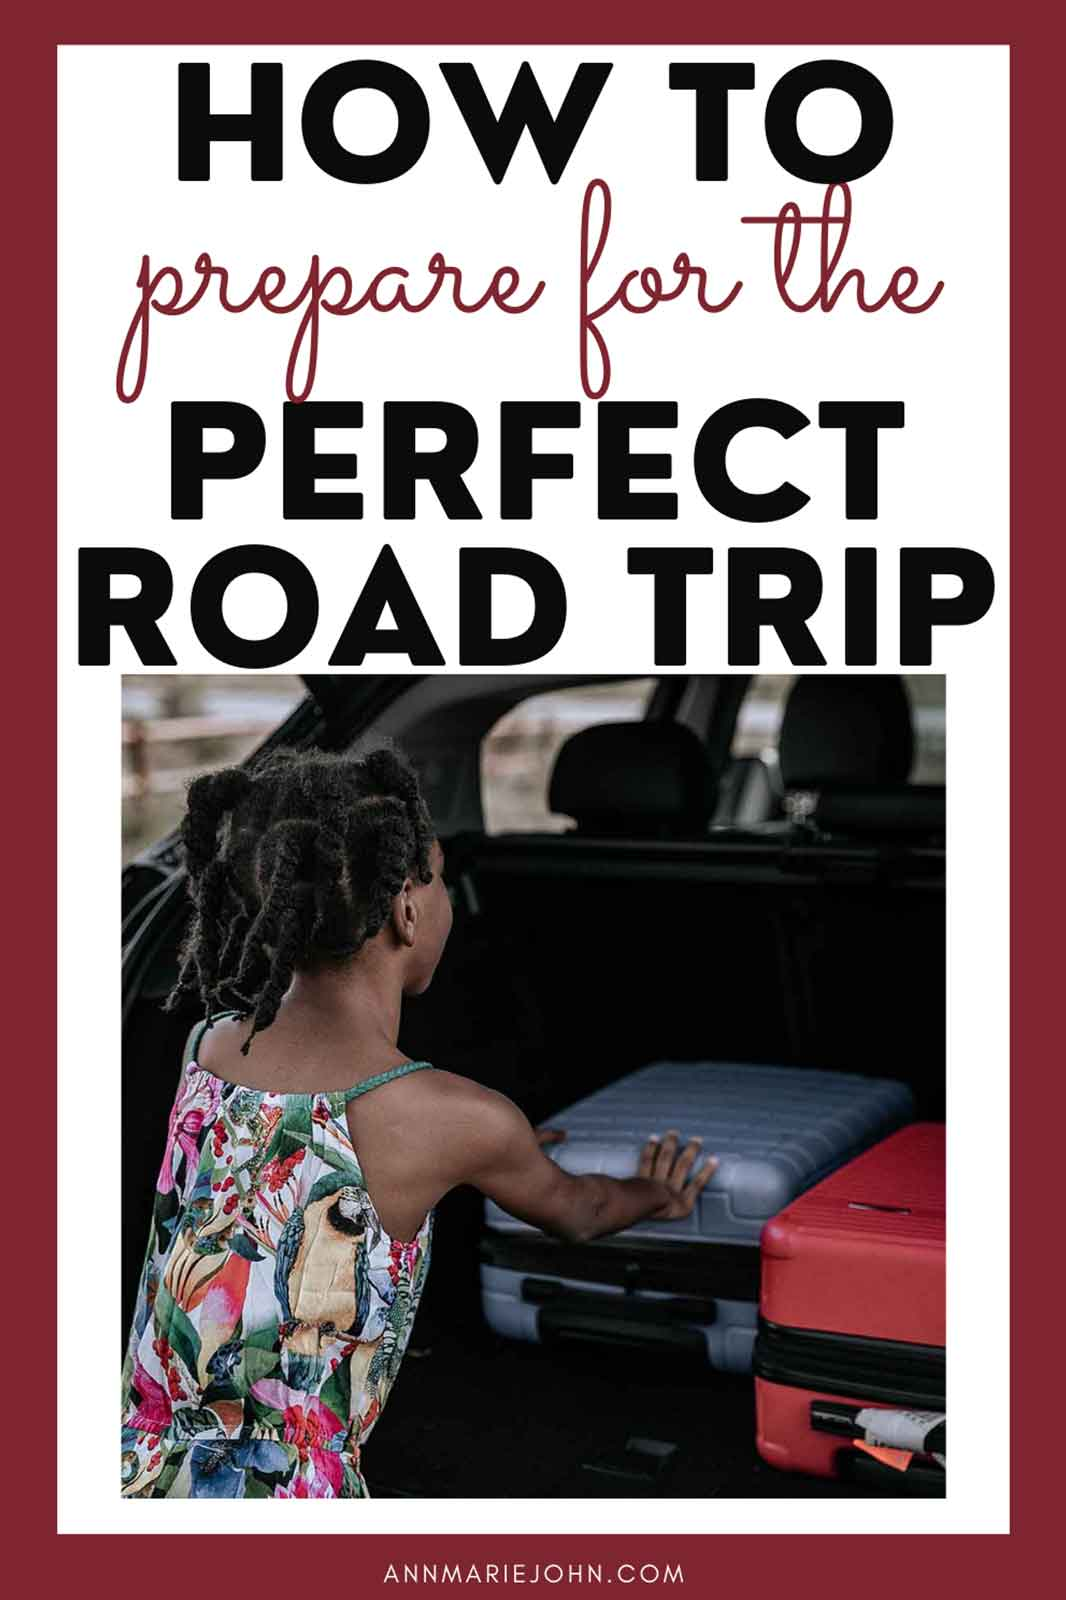 How To Prepare for the Perfect Road Trip